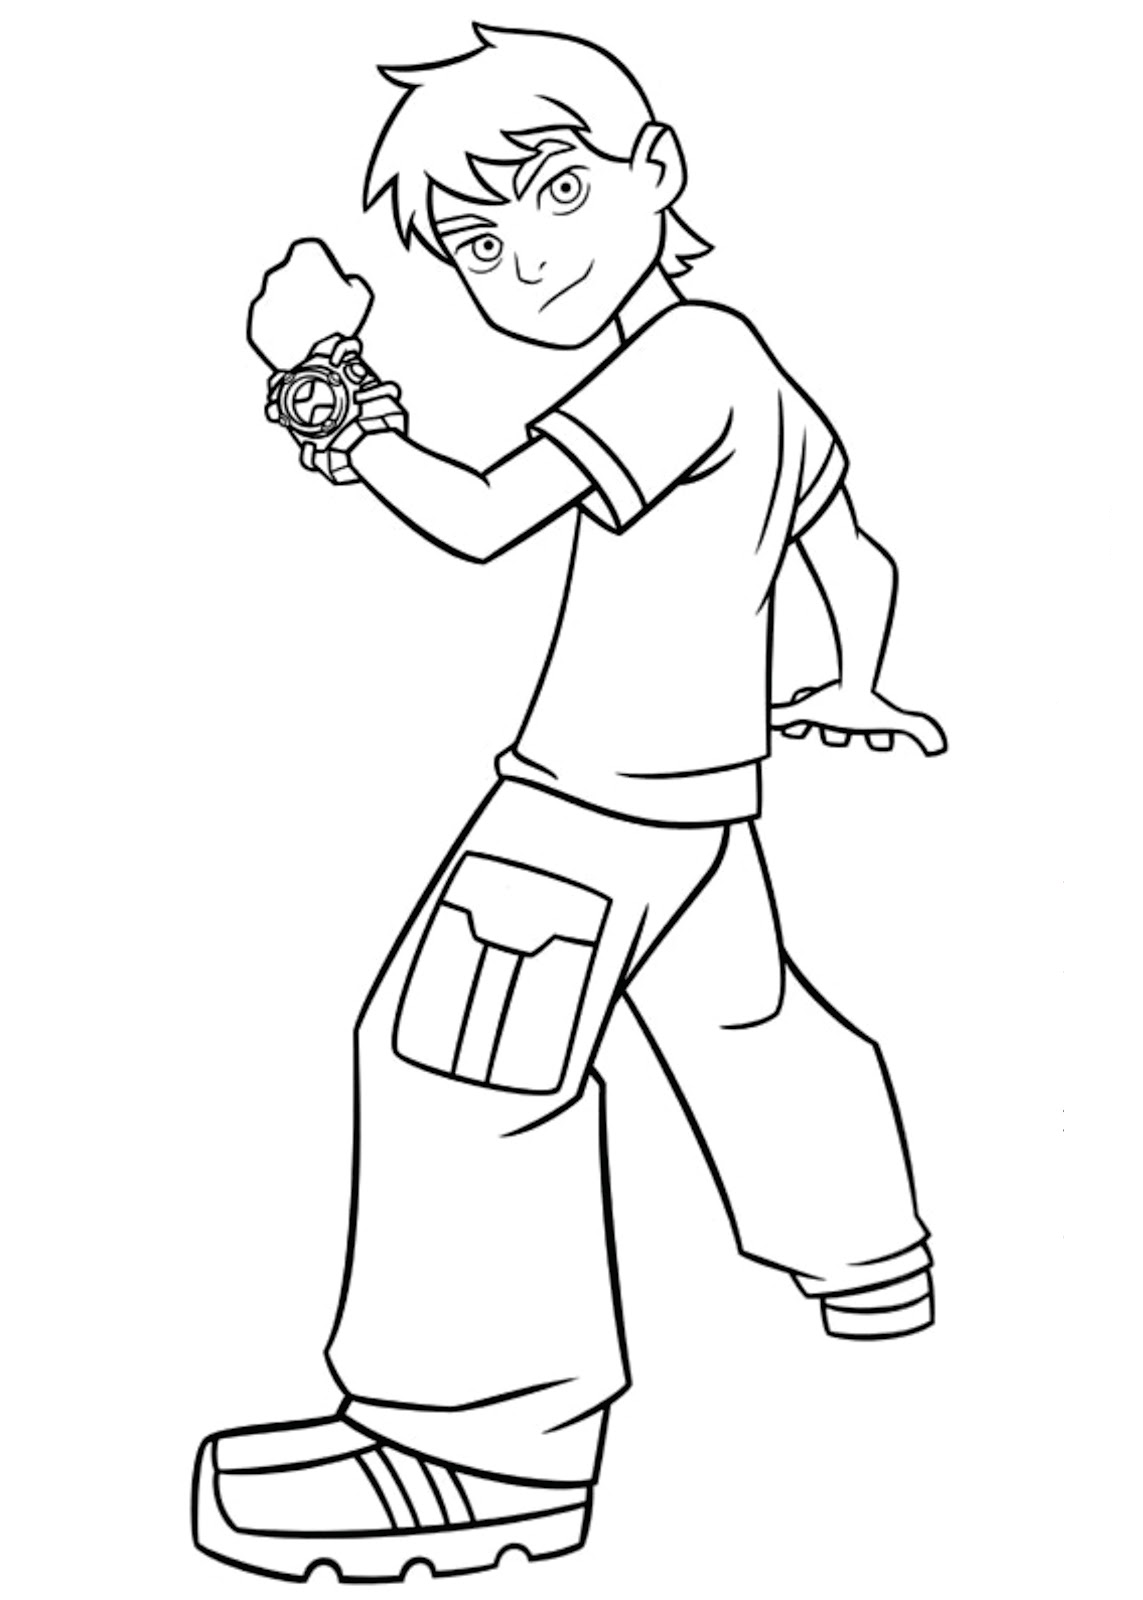 Incredible Ben 10 Coloring Page To Print And Color For Free